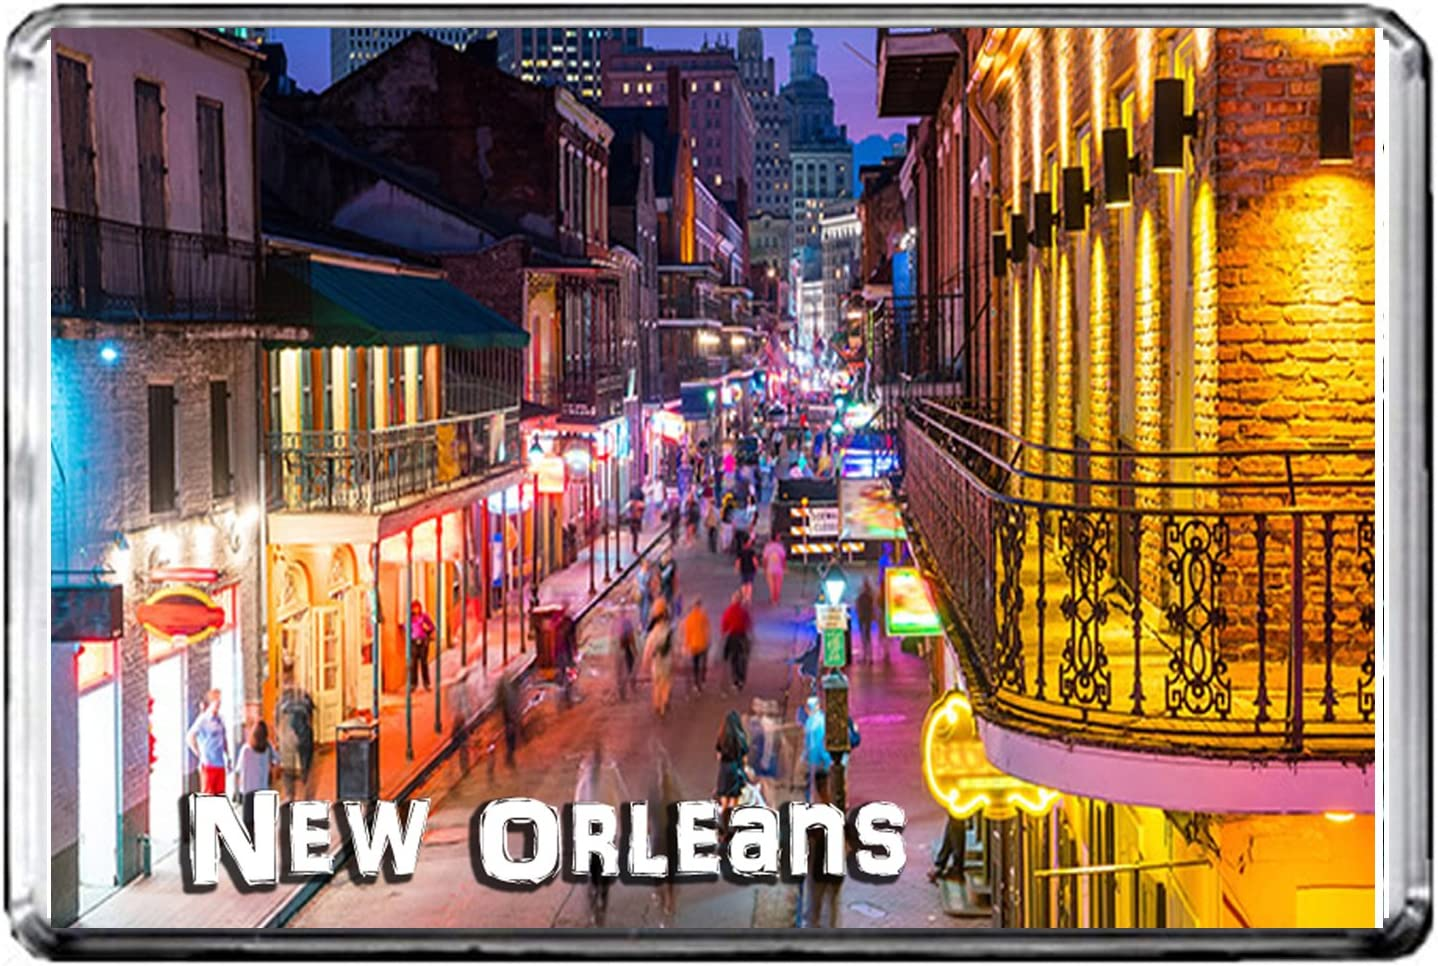 GIFTSCITY E226 NEW ORLEANS FRIDGE MAGNET USA TRAVEL PHOTO REFRIGERATOR MAGNET